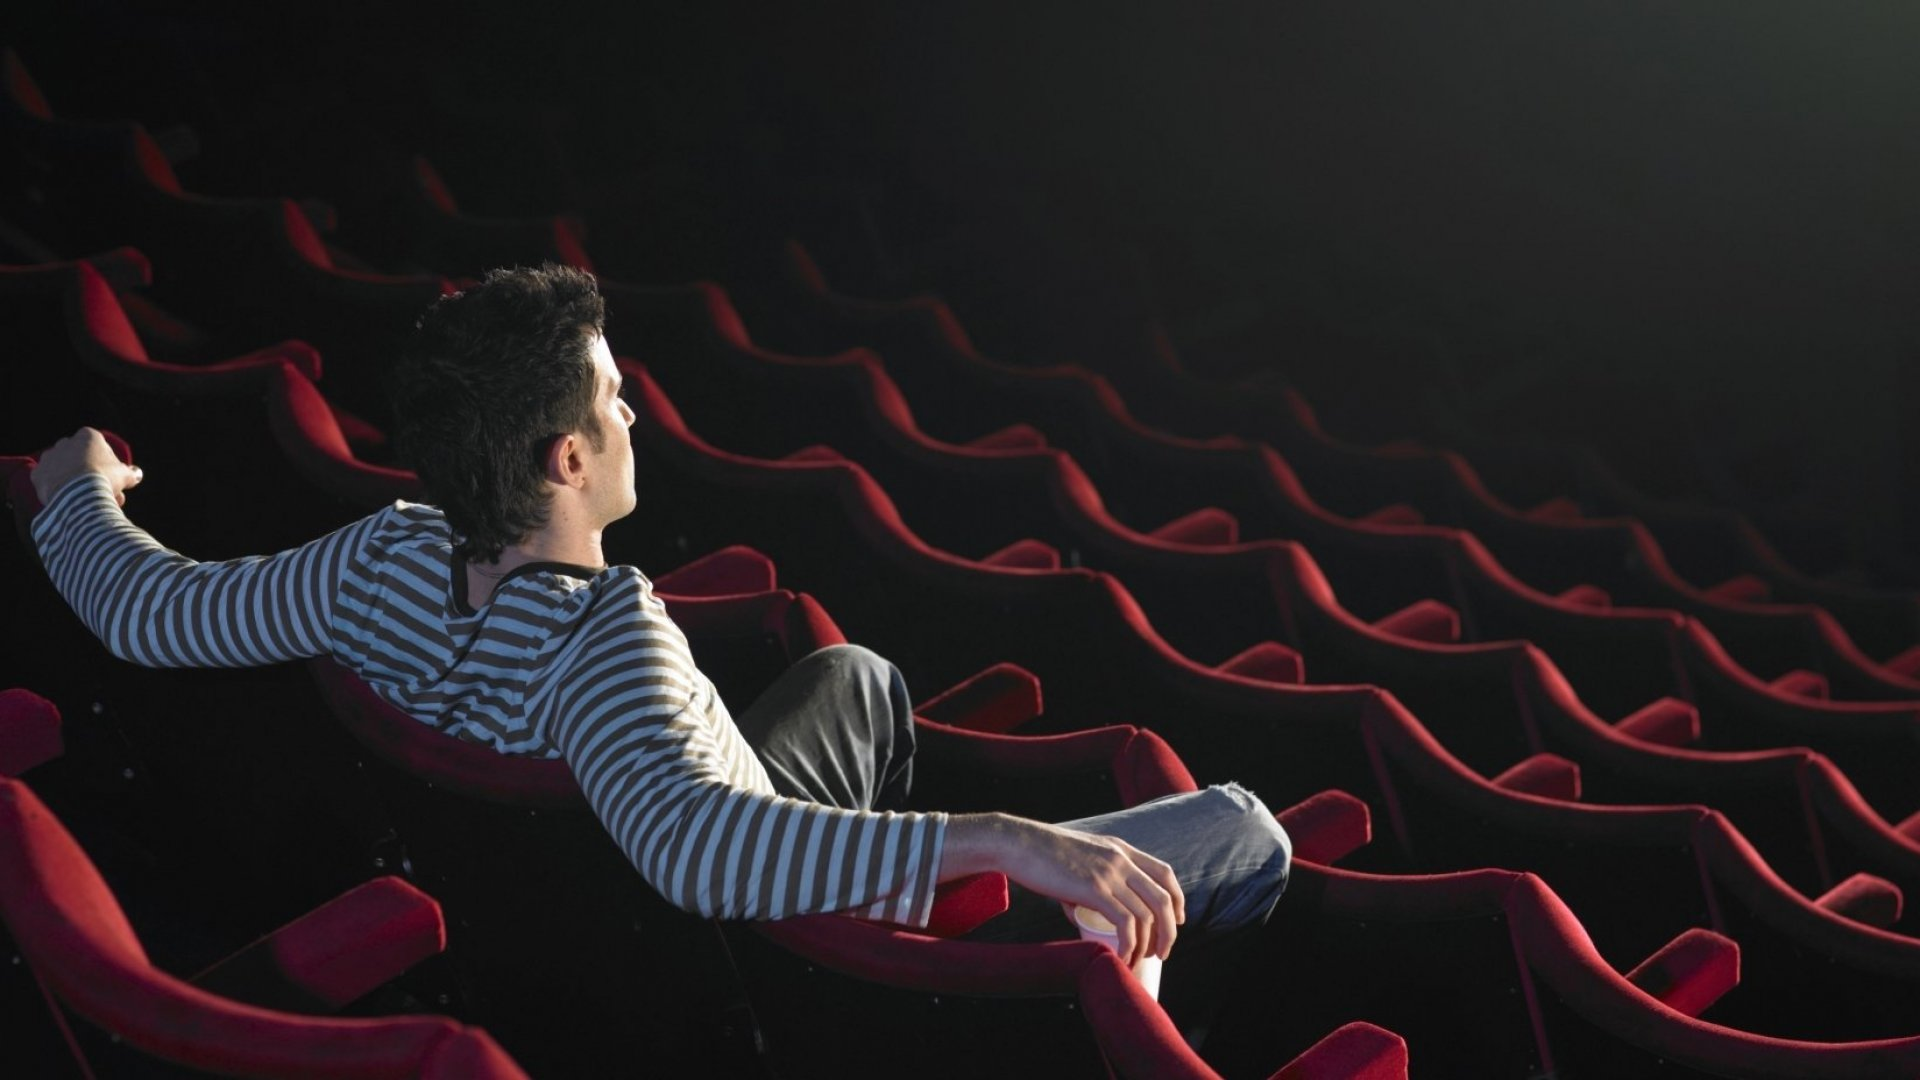 Artificial Intelligence, Mindfulness, and The Movies